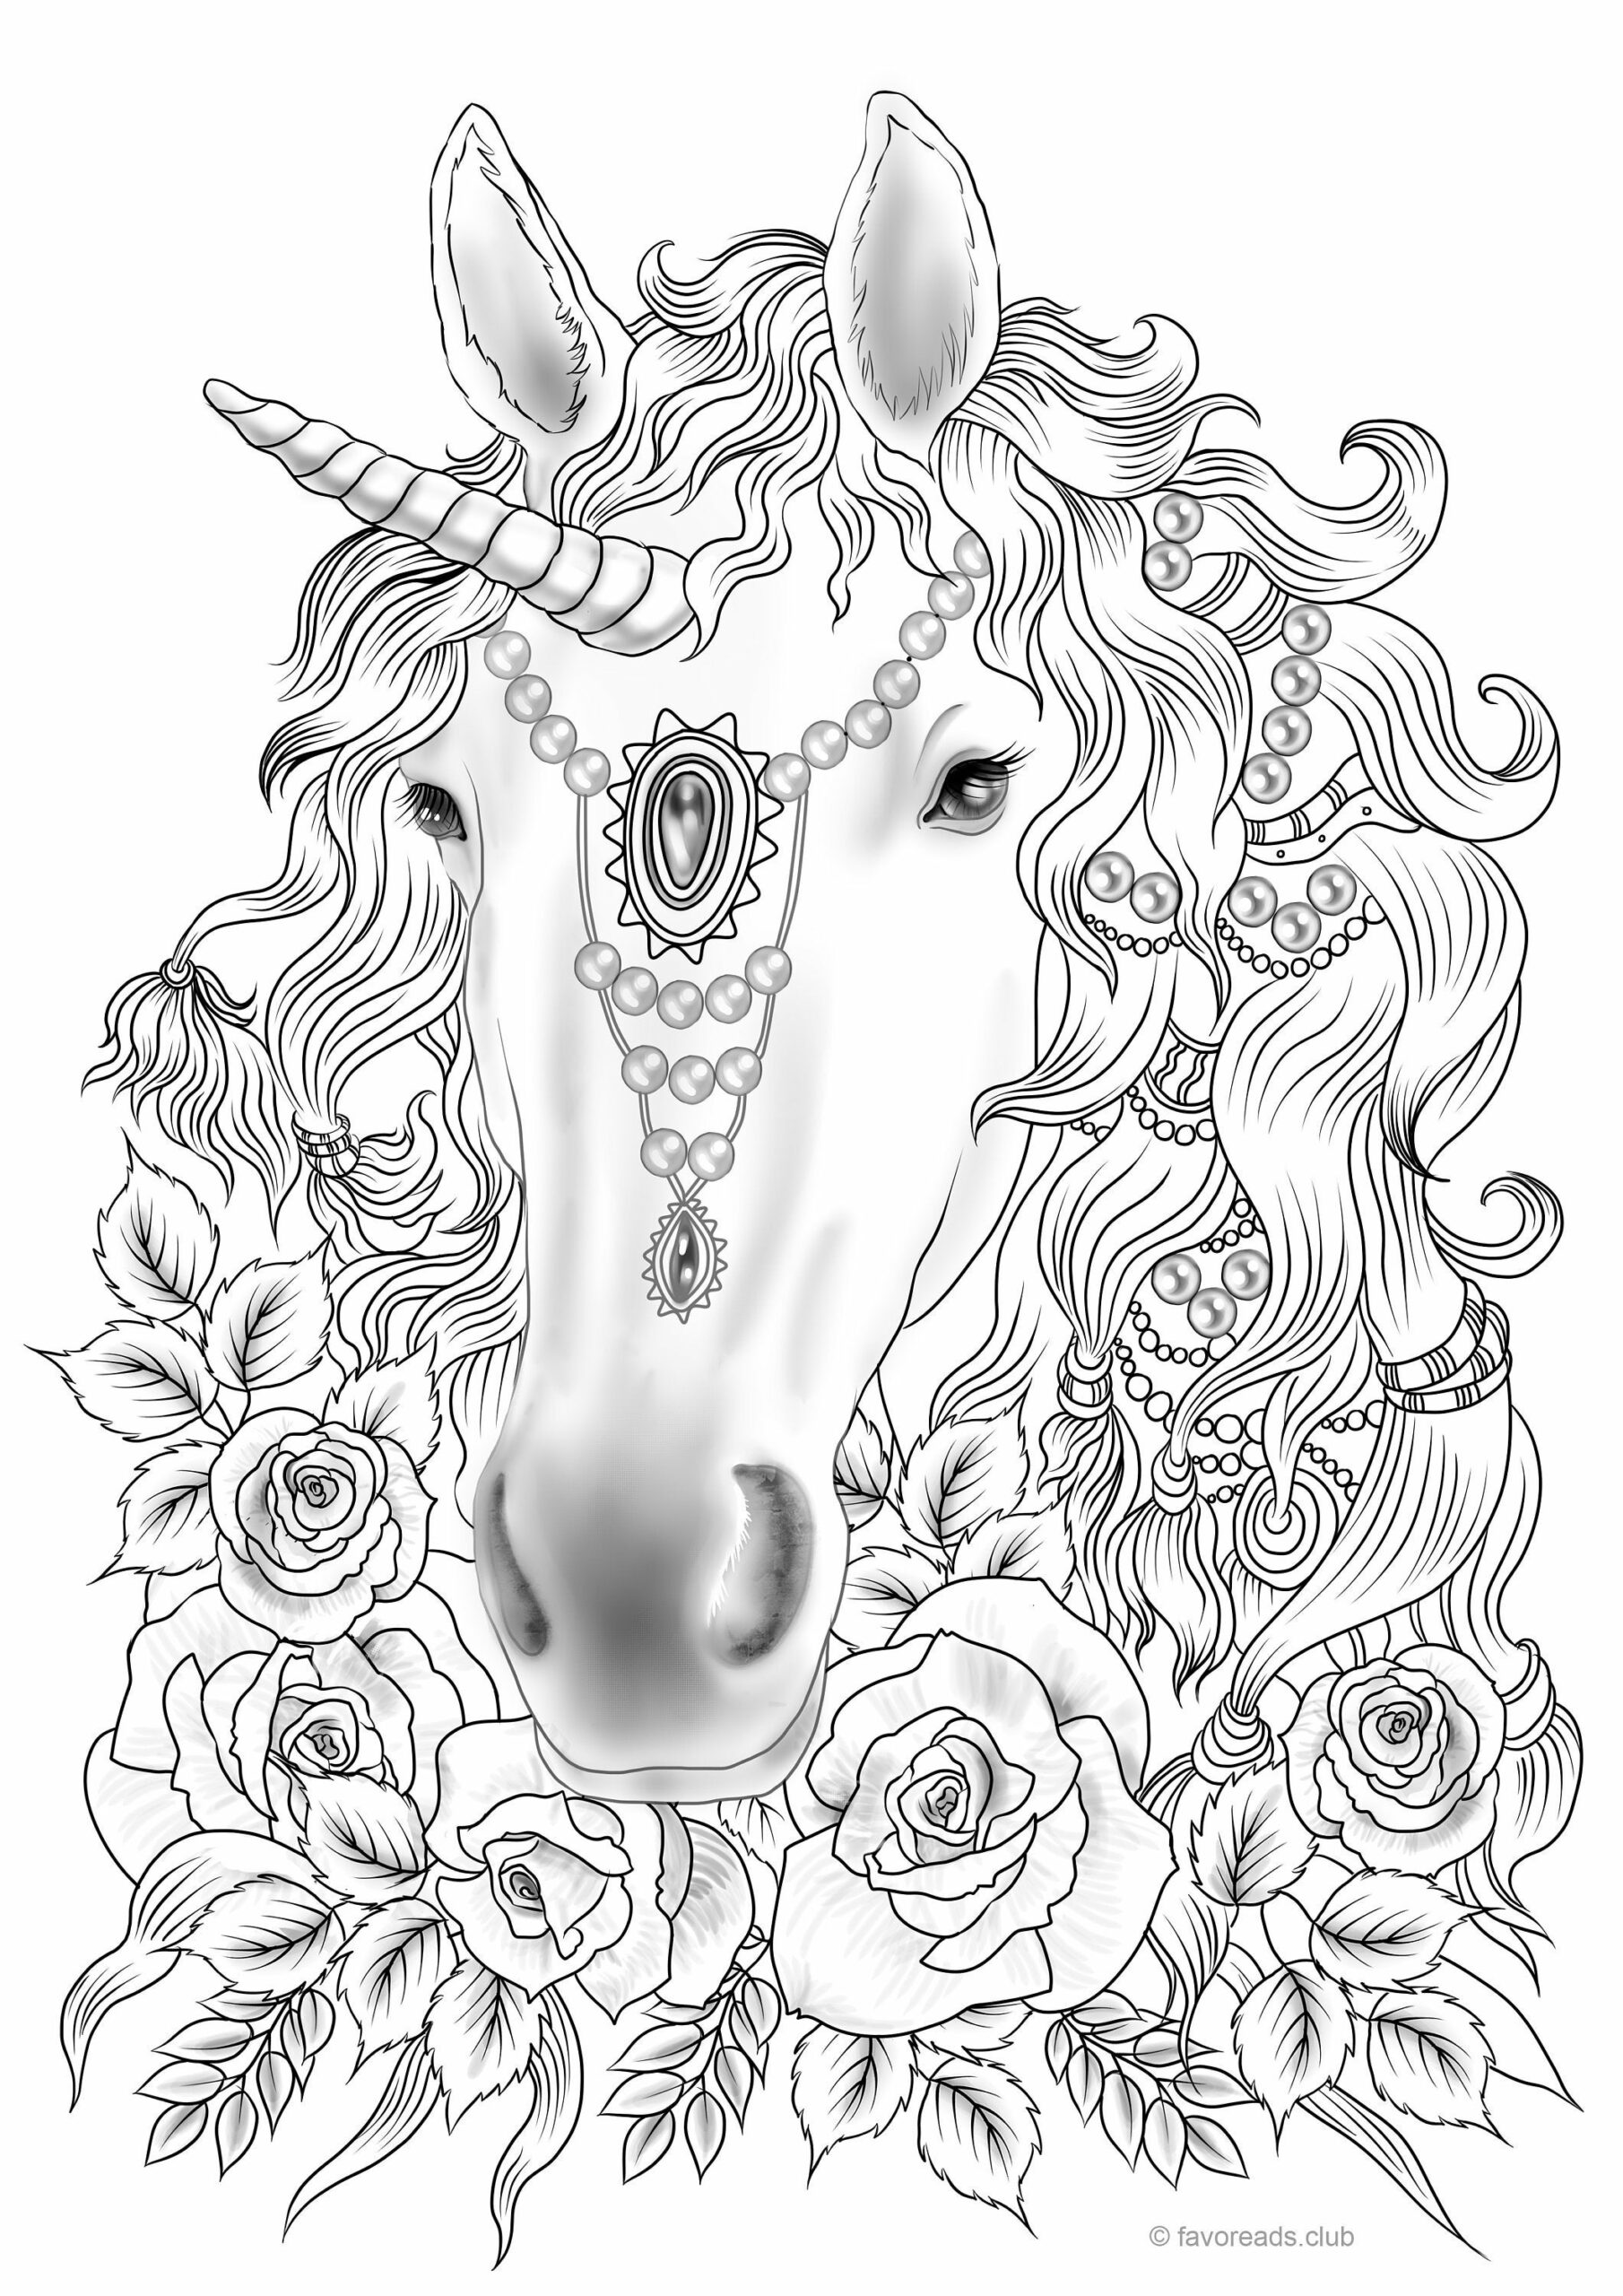 coloring pages for adults unicorn unicorn coloring pages for adults adults pages for unicorn coloring